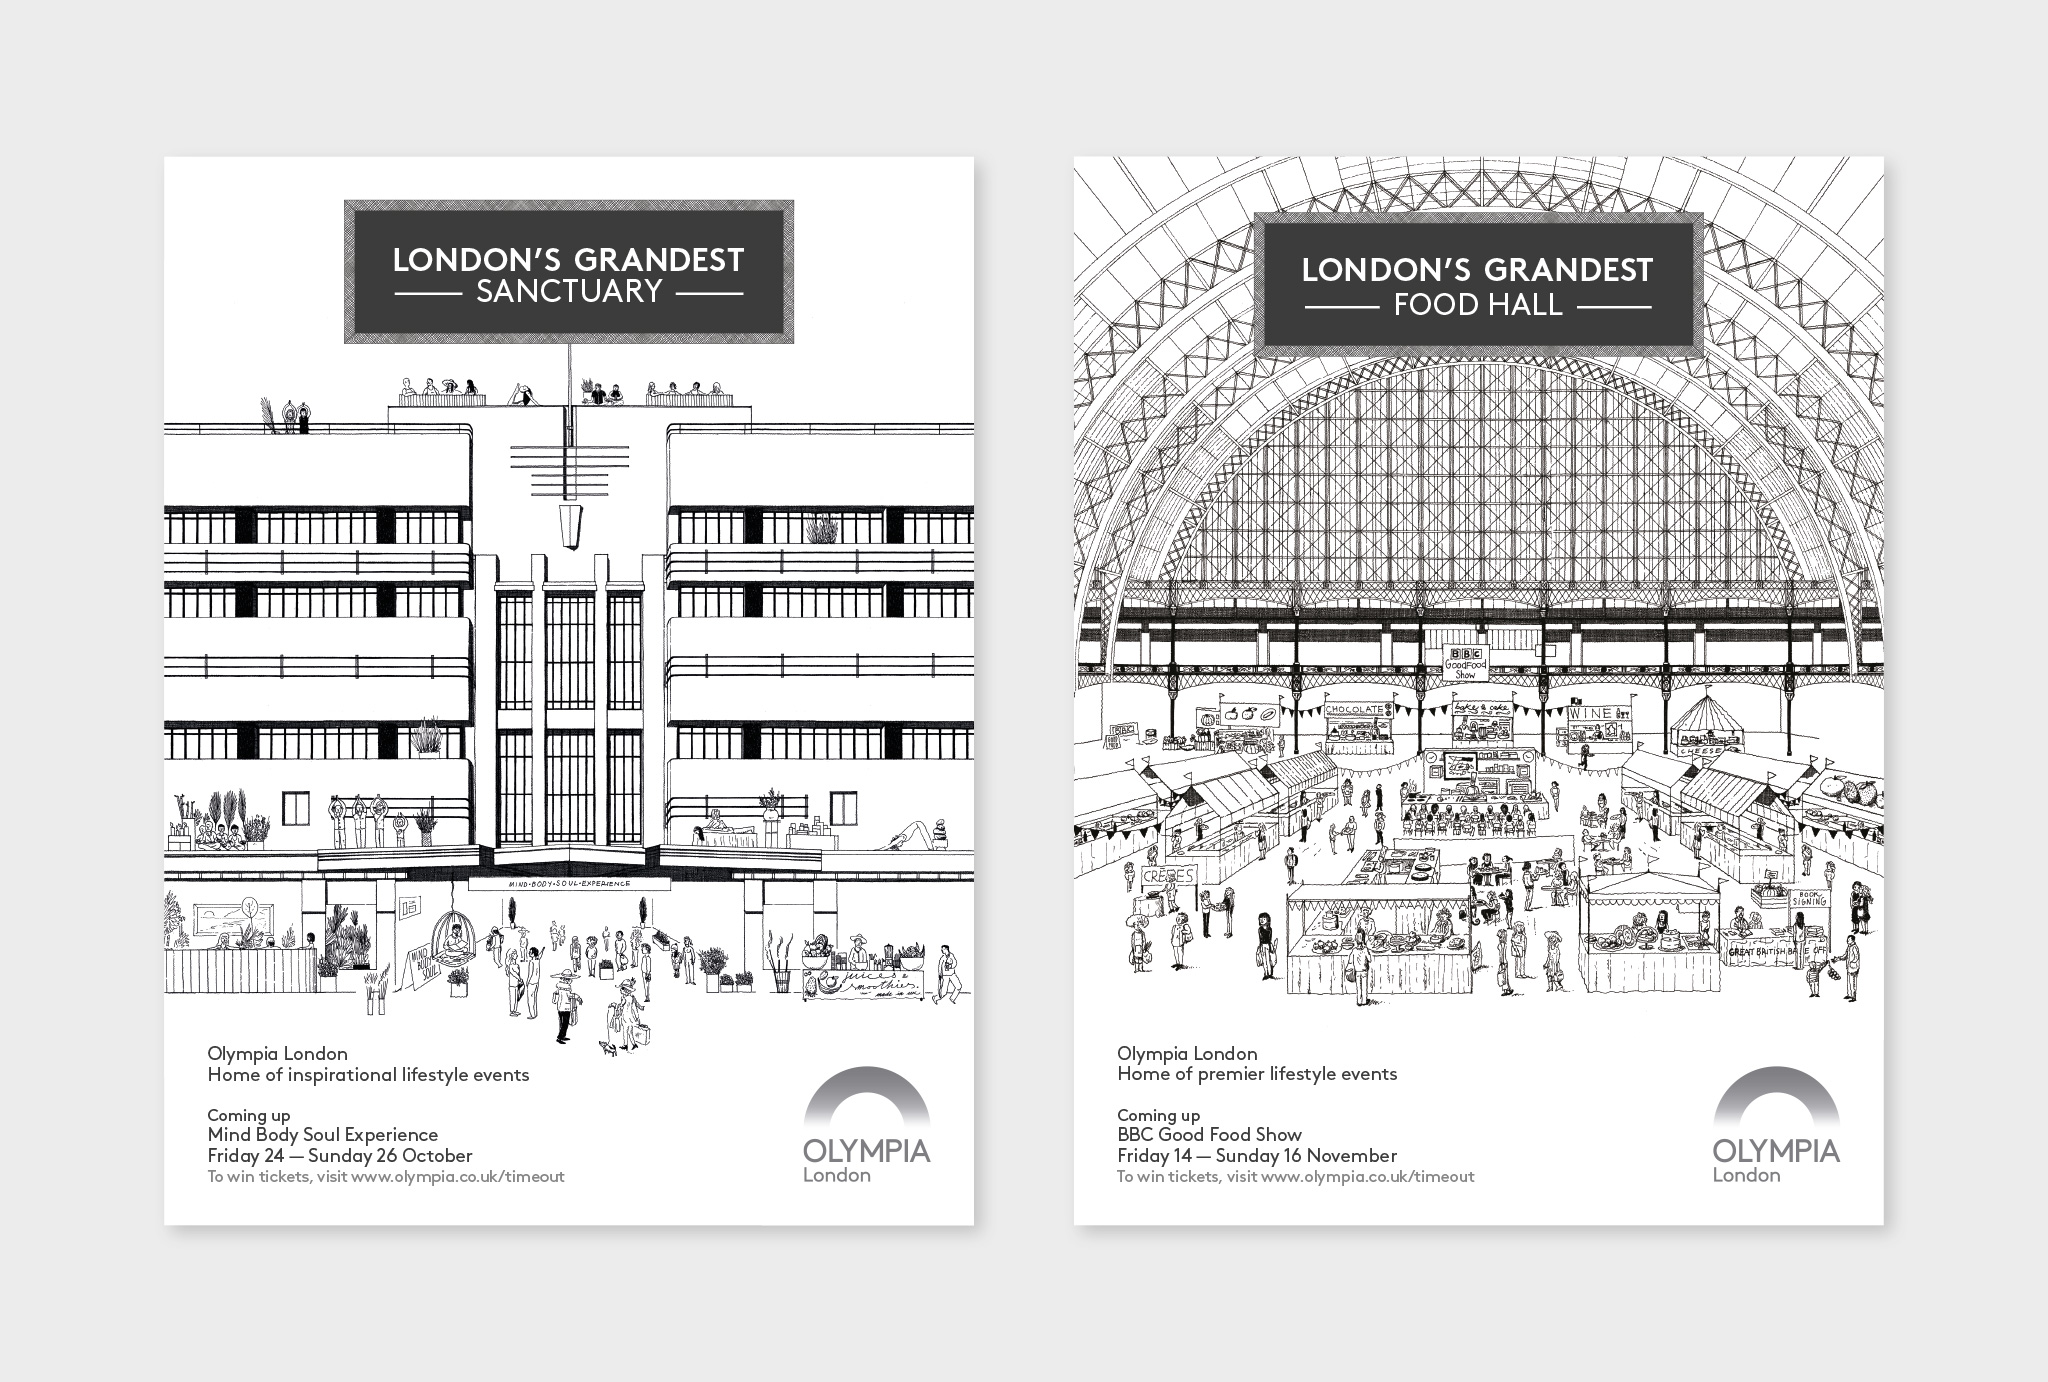 black and white, hand drawn design for London's Grandest SANCTUARY and FOOD HALL